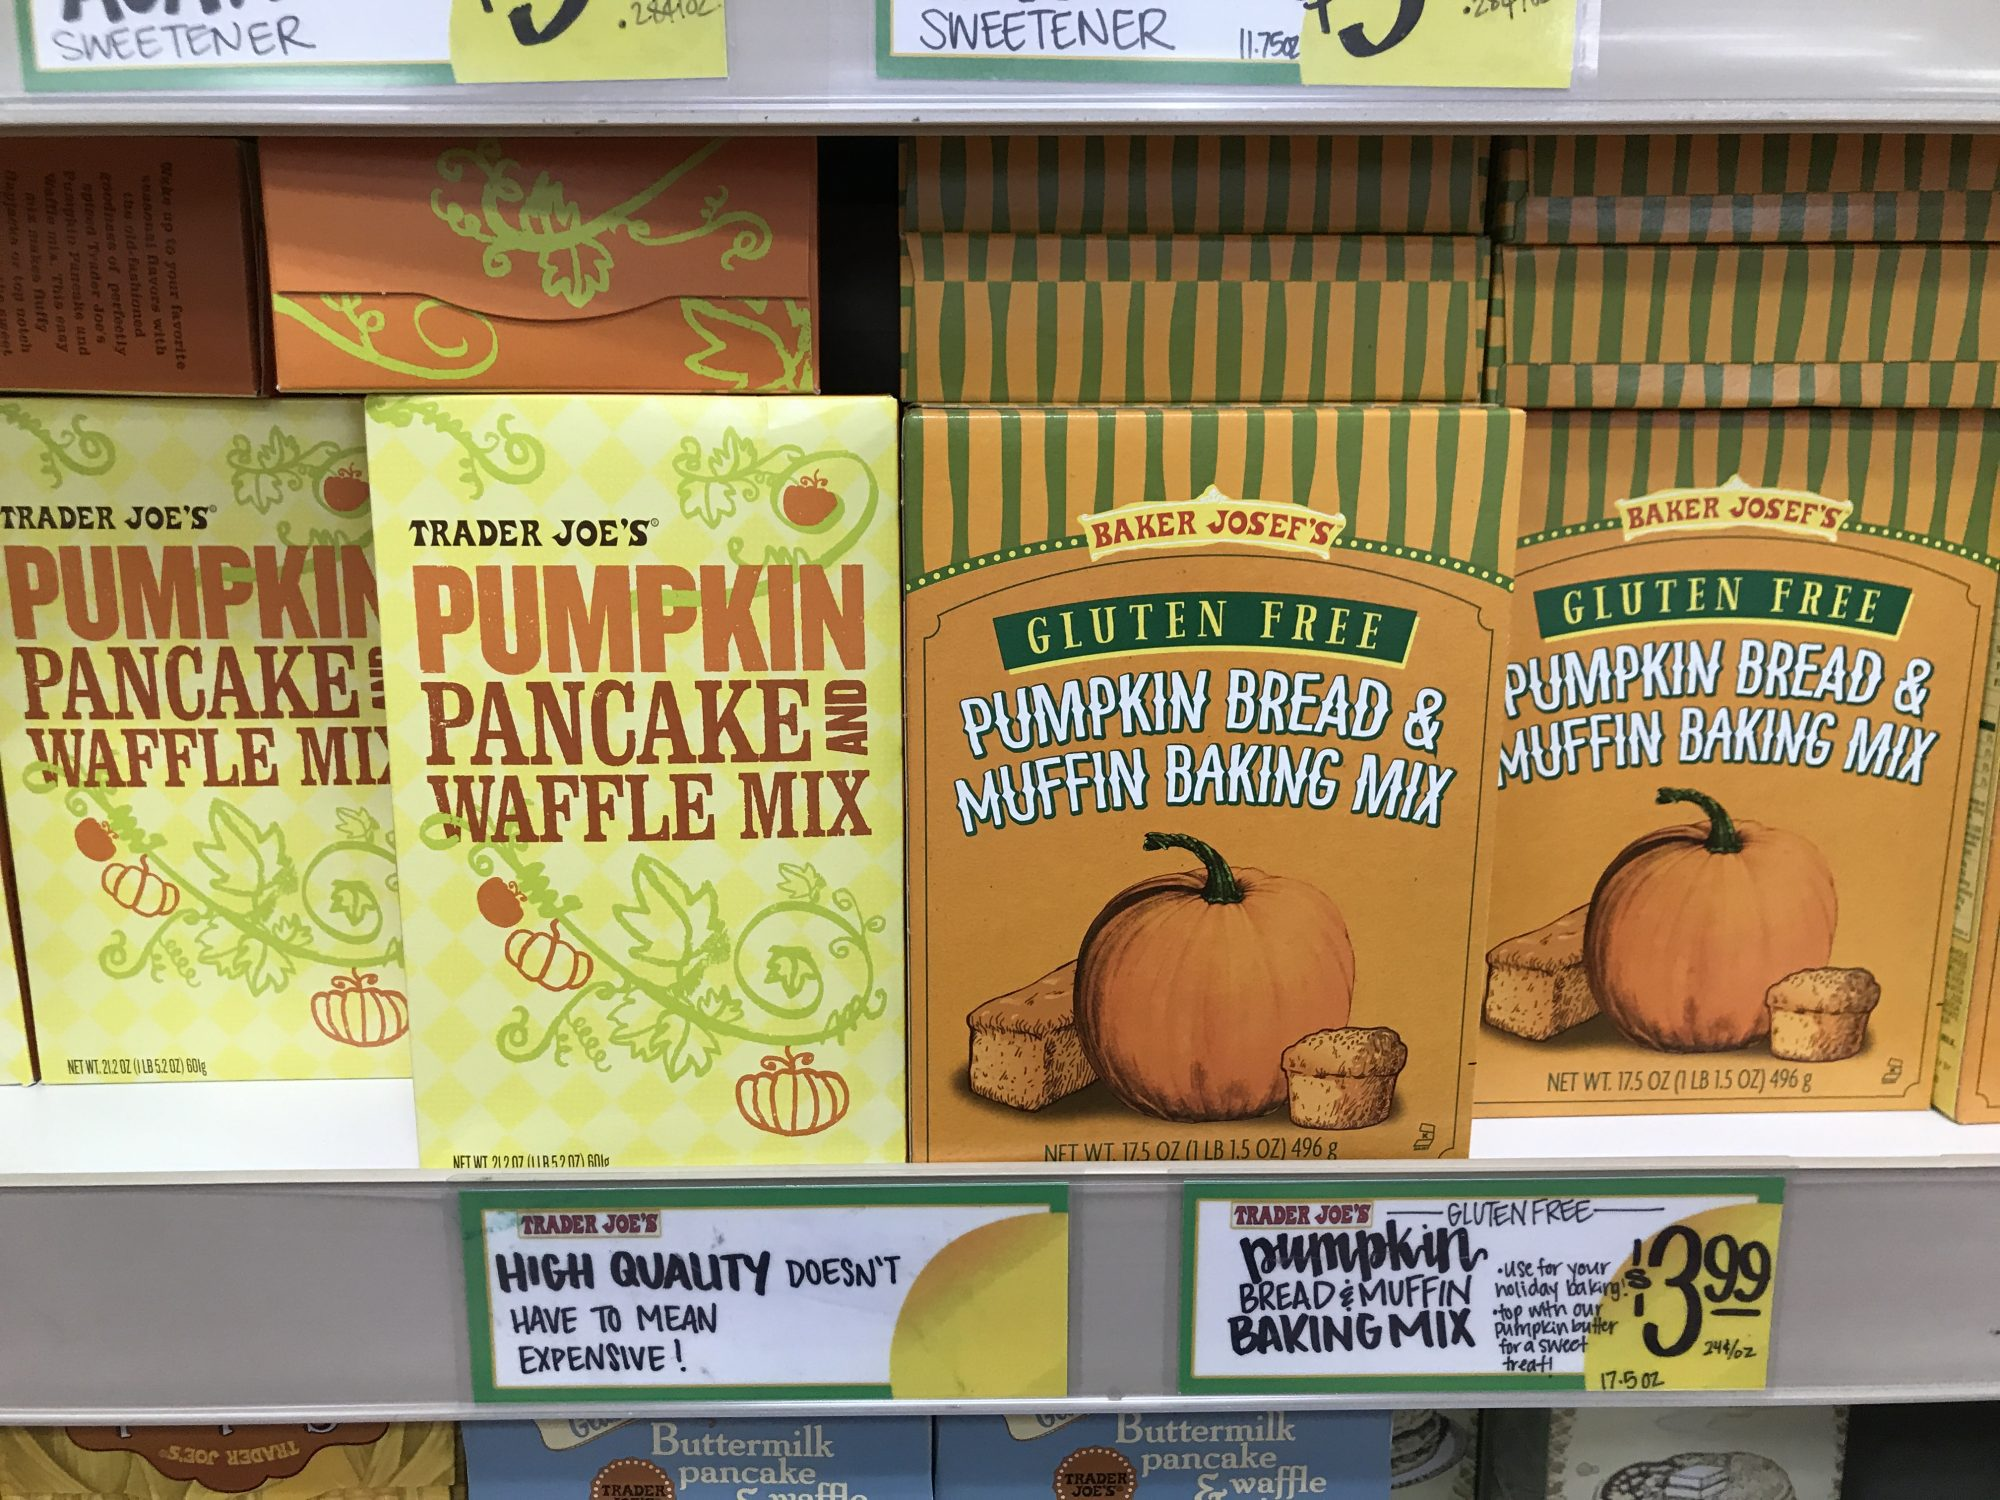 TJ's Pumpkin Pancake Mix